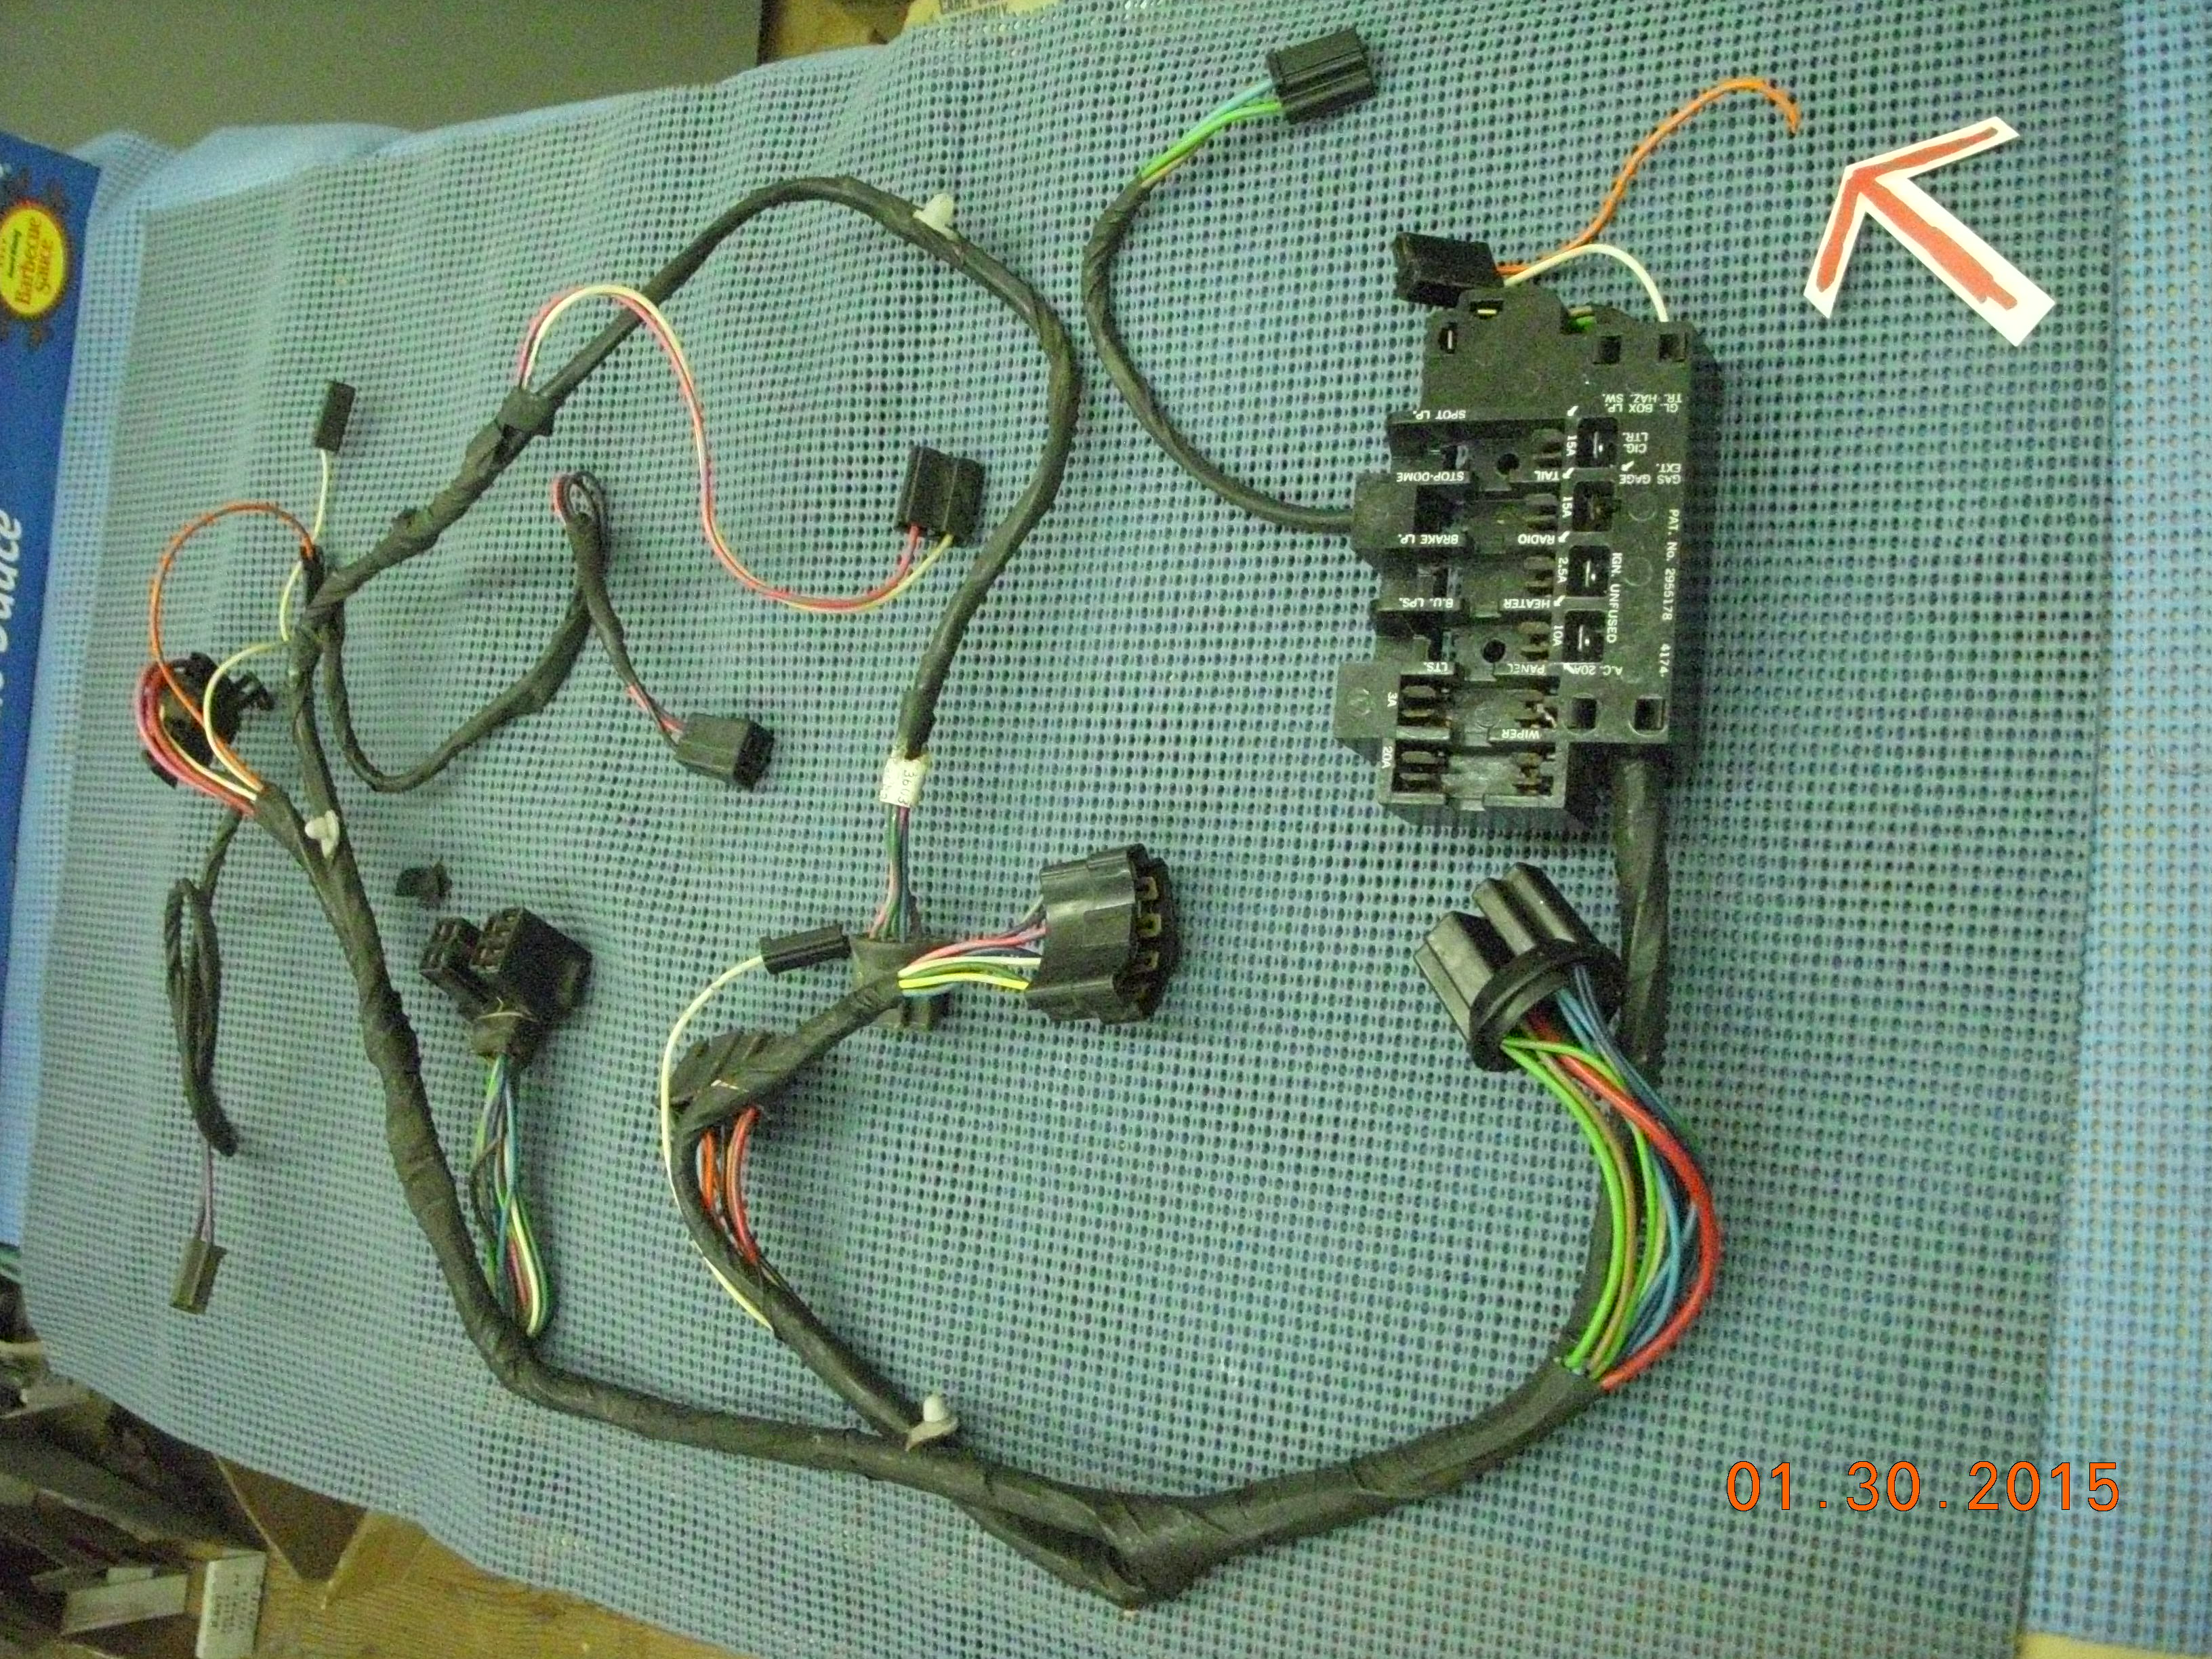 1966 Gmc Wiring Harness Library 1963 Diagram Pickup Instrument Panel Assembly Nos Rh Oldsobsolete Com 1973